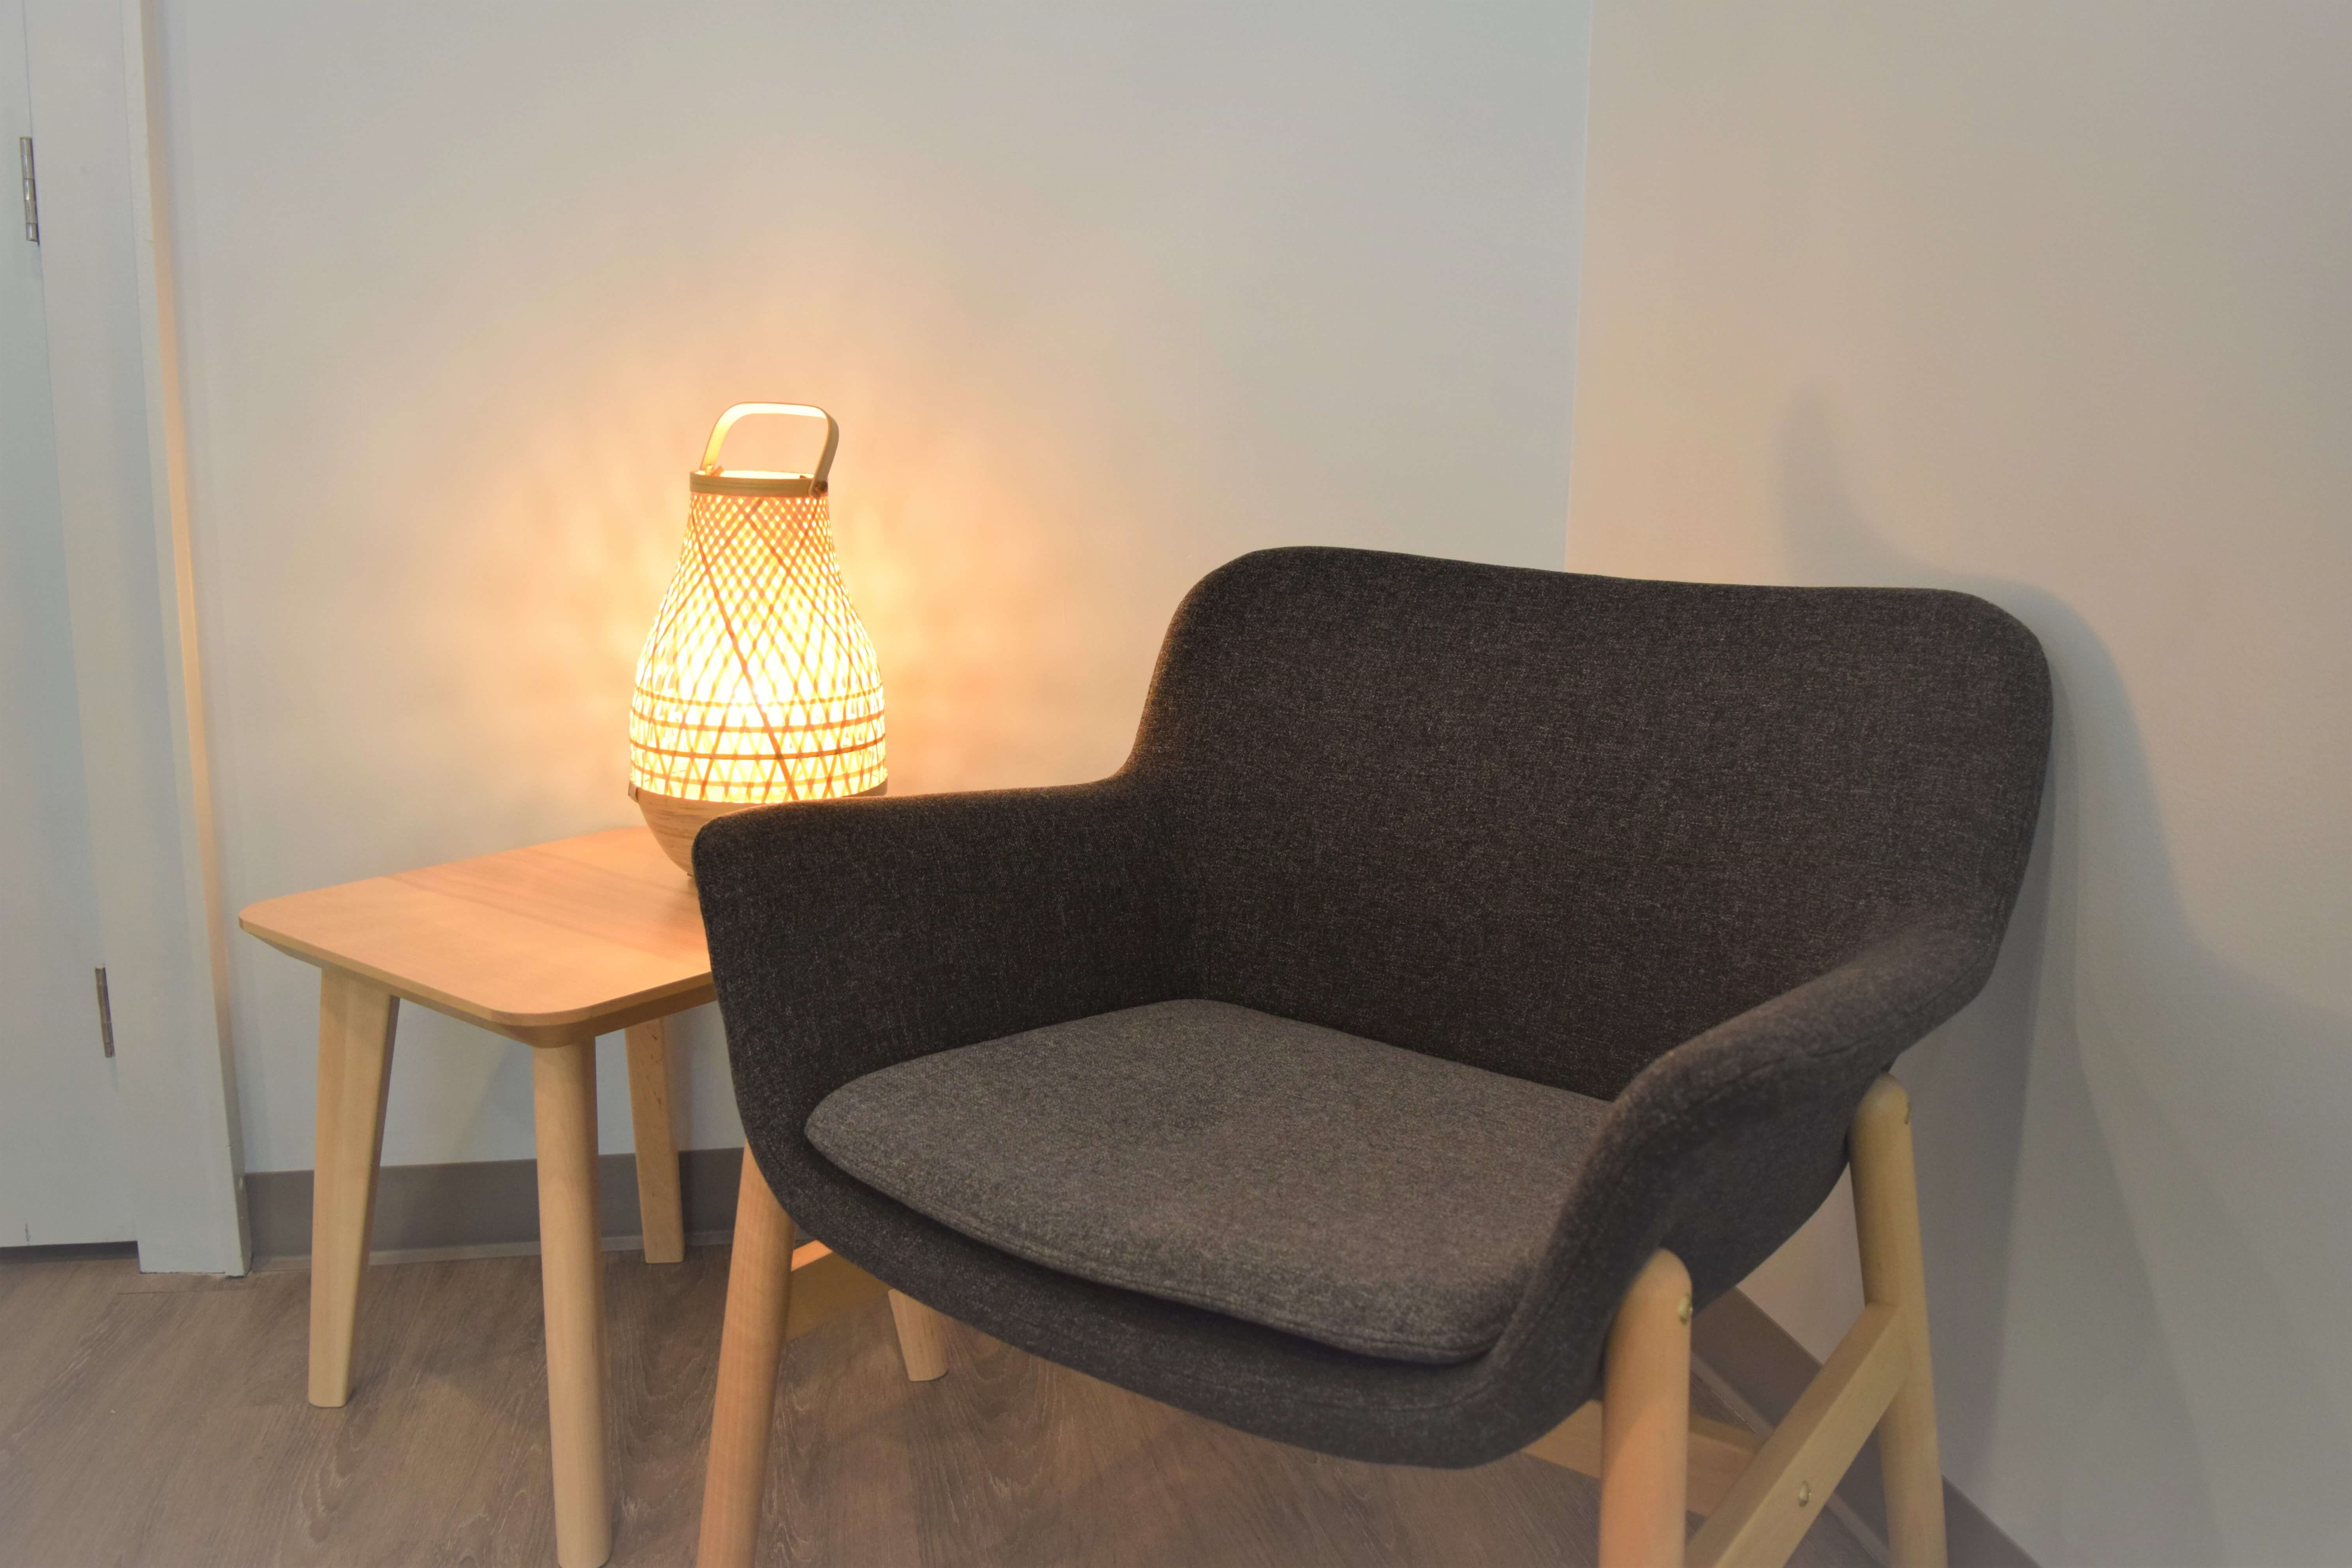 Chair and table in den